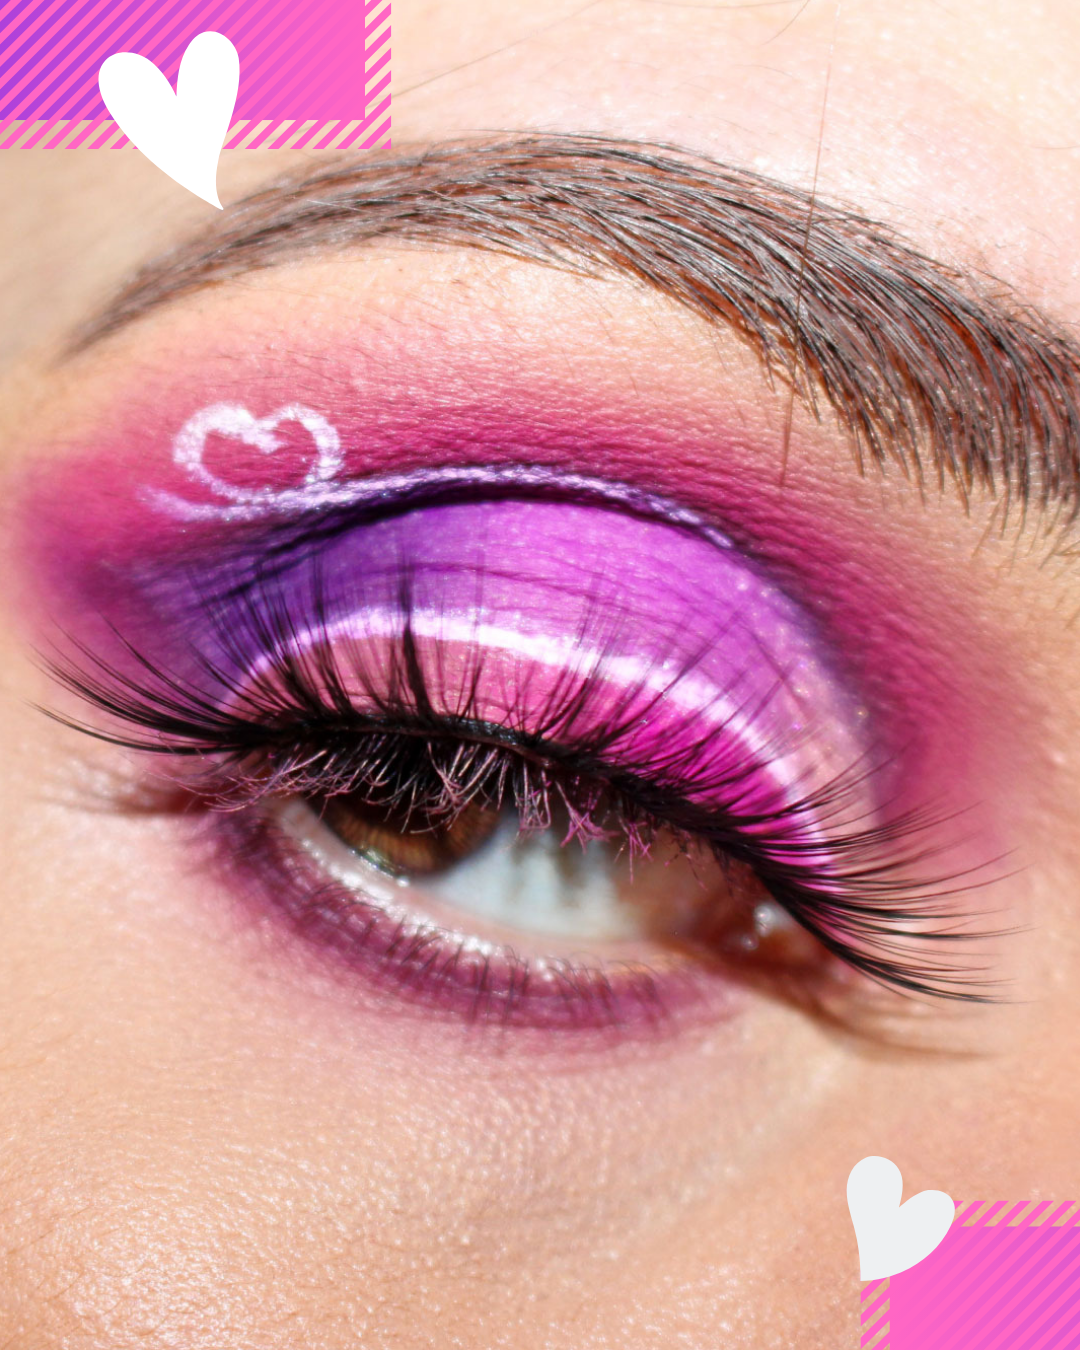 frankiefrancy Saint Valentine pink makeup look with heart detail. soft cut crease